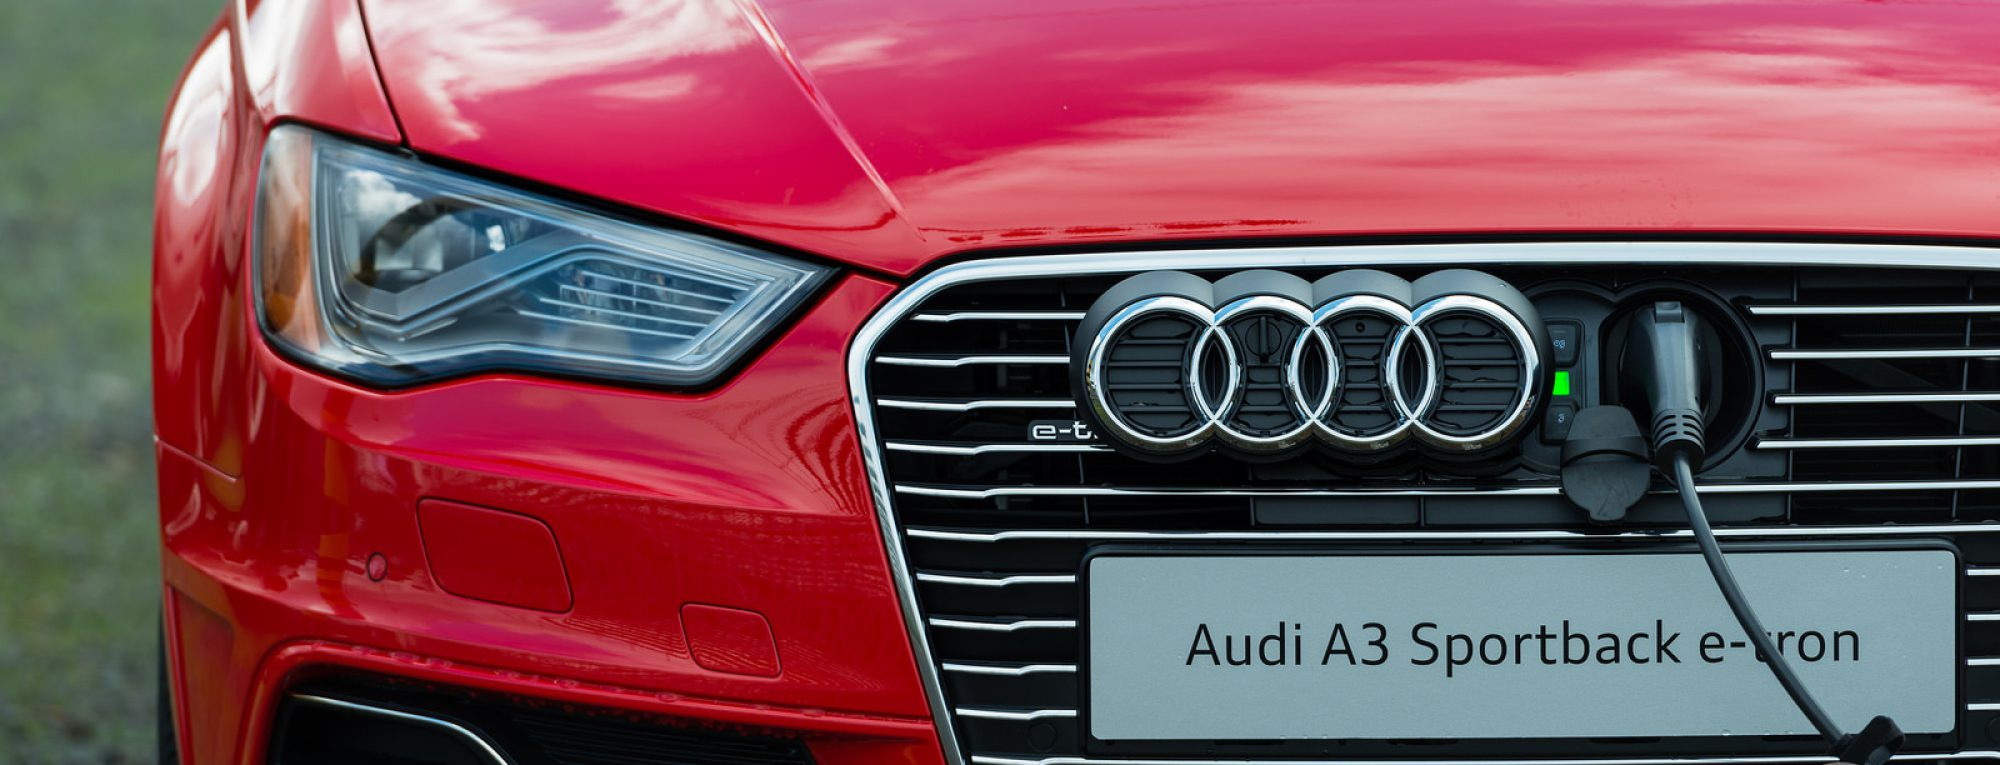 Weekend Drive And Review 2013 Audi A7 Audi For Life